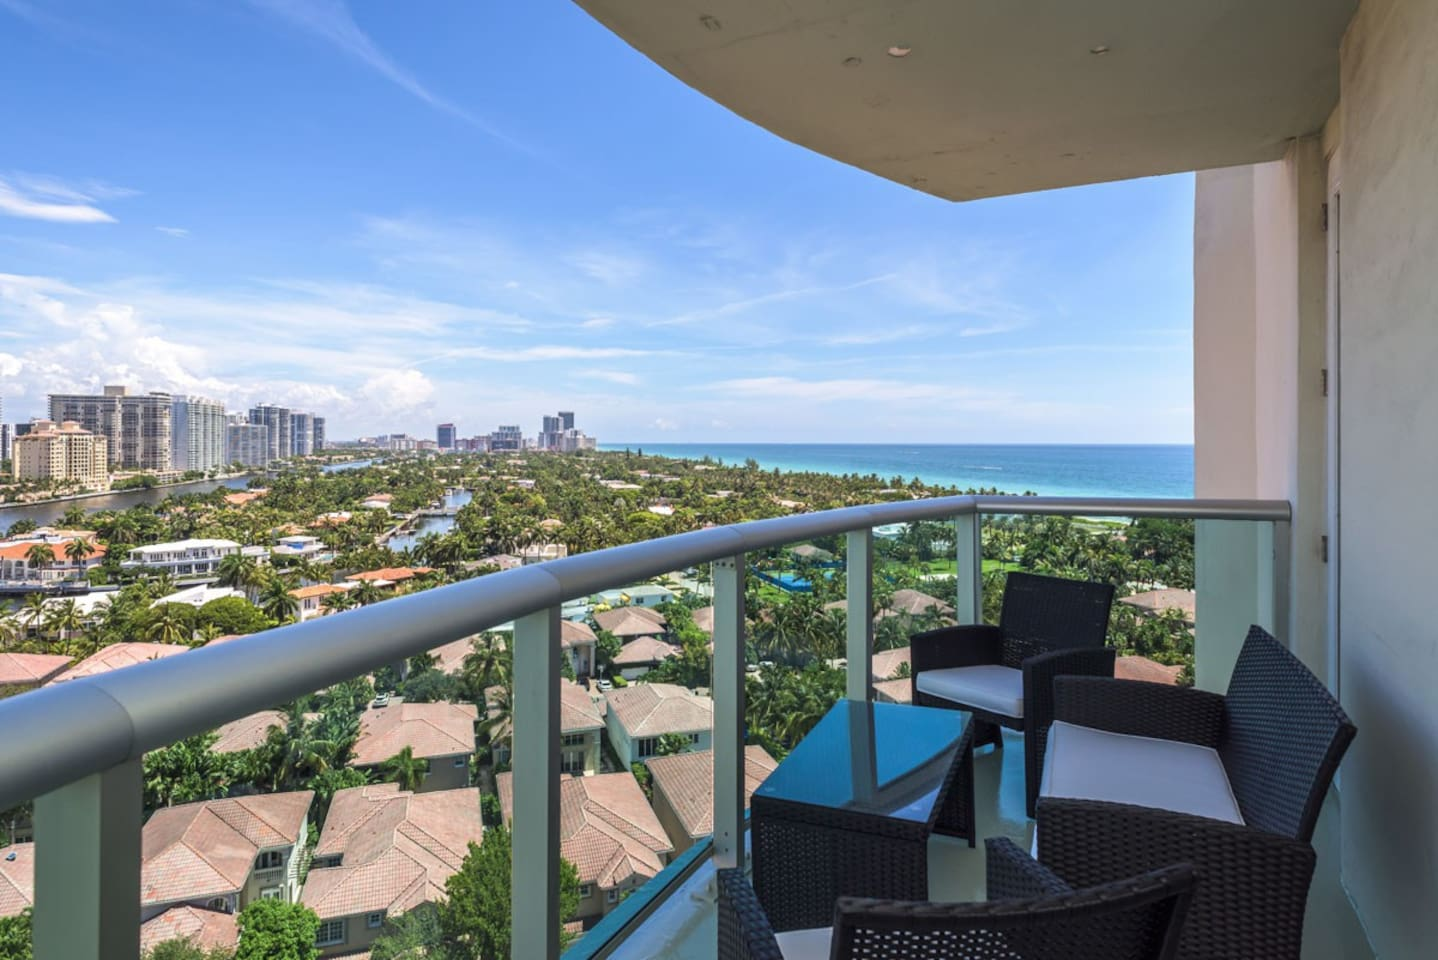 Incredible balcony views of both the Sunny Isles Beach as well as the Bay, and the city all in a high floor